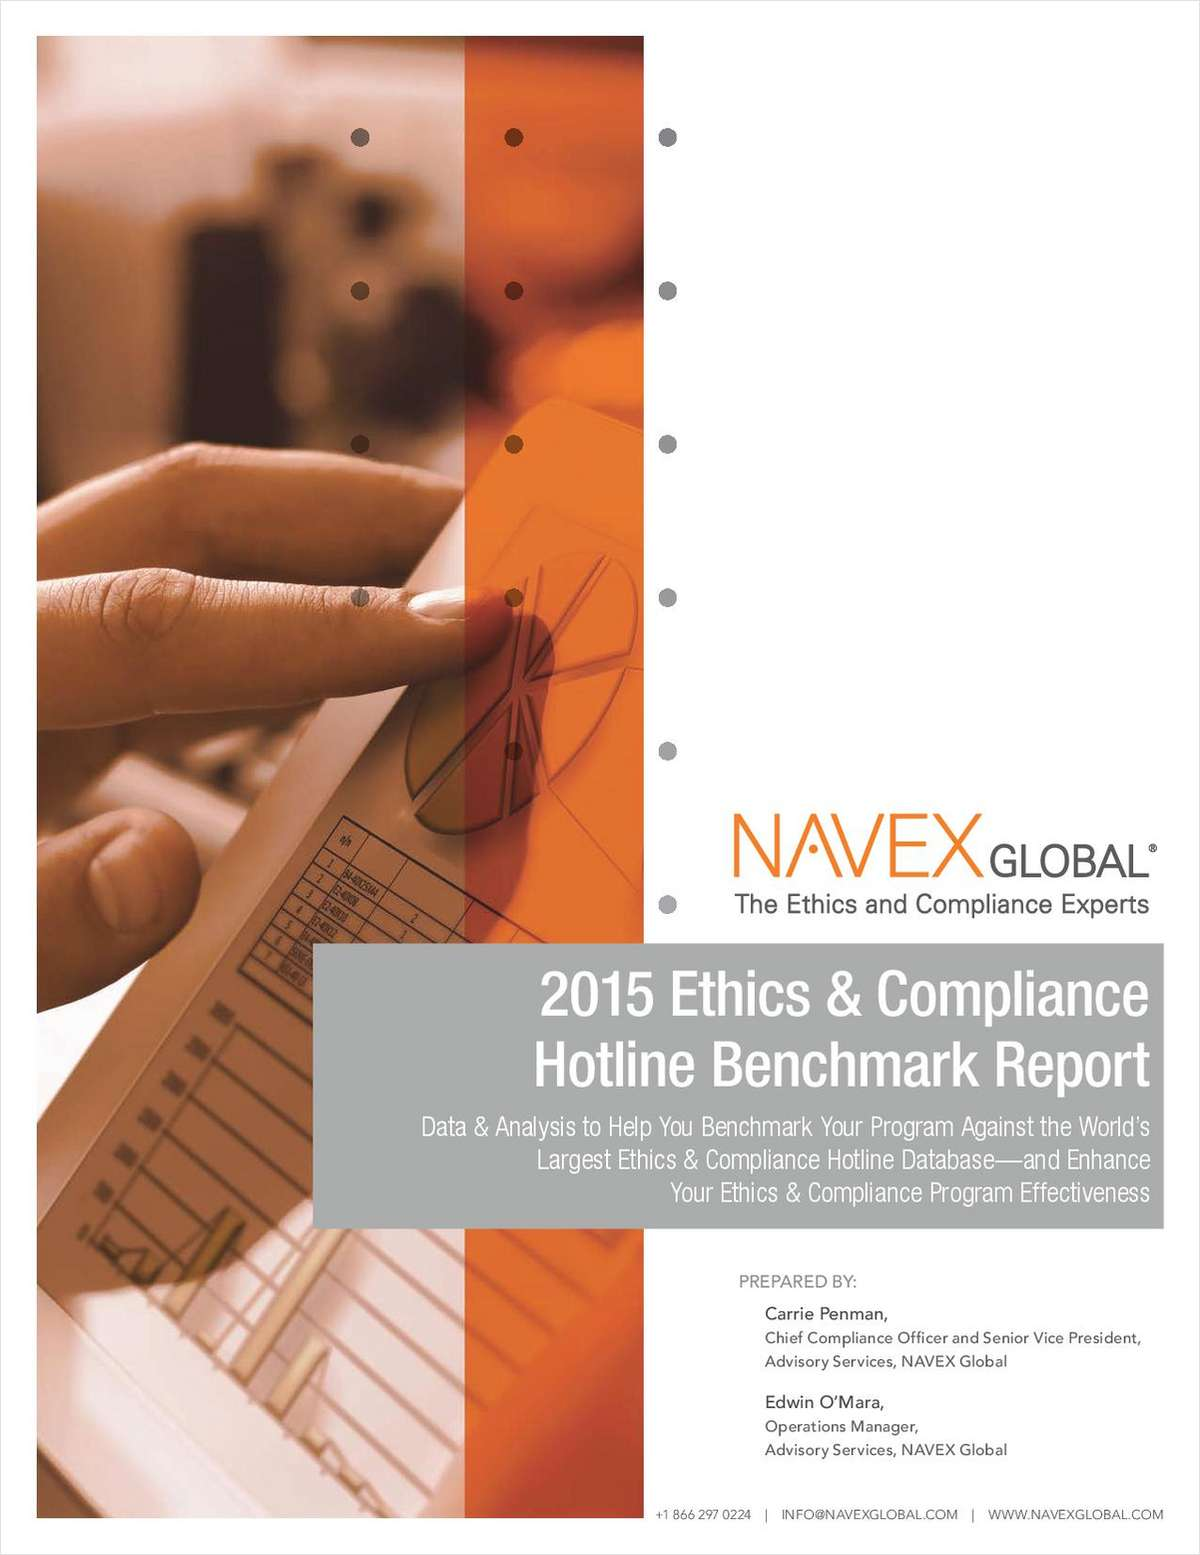 2015 Hotline Benchmark Report for Legal, Ethics and Compliance Professionals